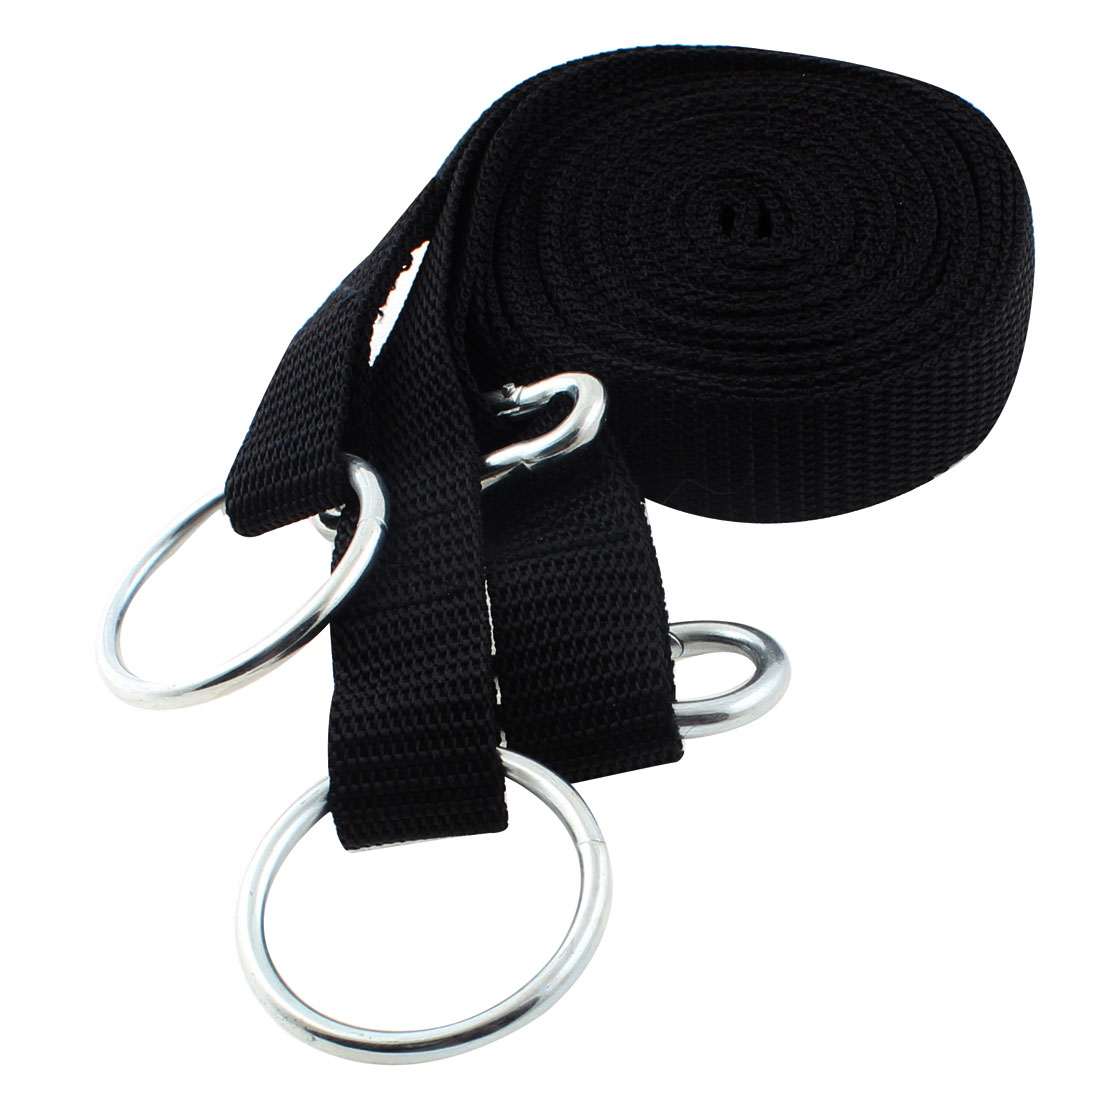 Carabiner Nylon Belt Band Hanging Ring Hammock Strap Safety Black 8Ft Long 2pcs